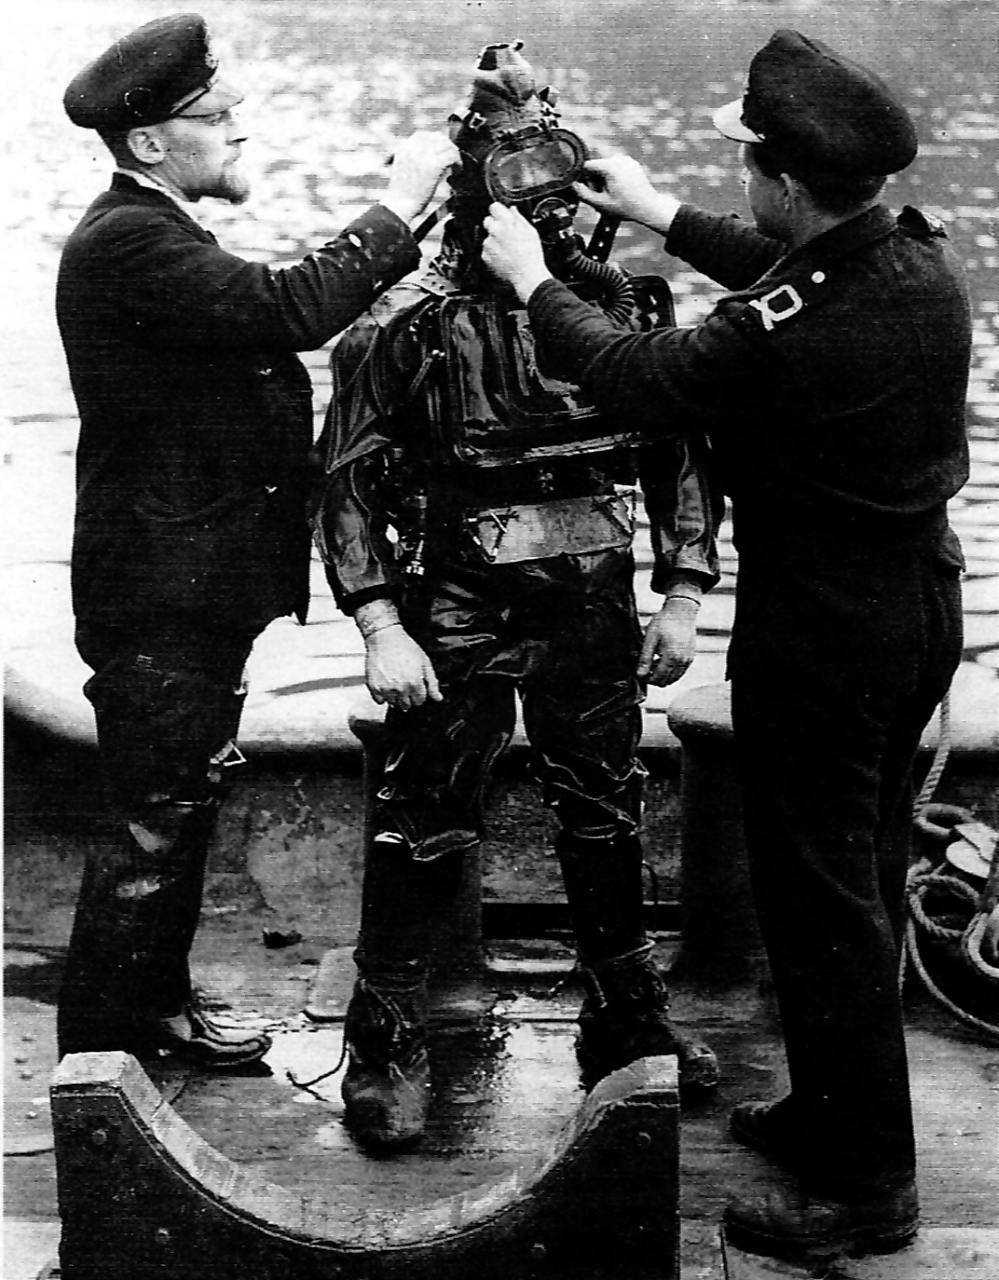 Copy of A Charioteer frogman being prepared to dive